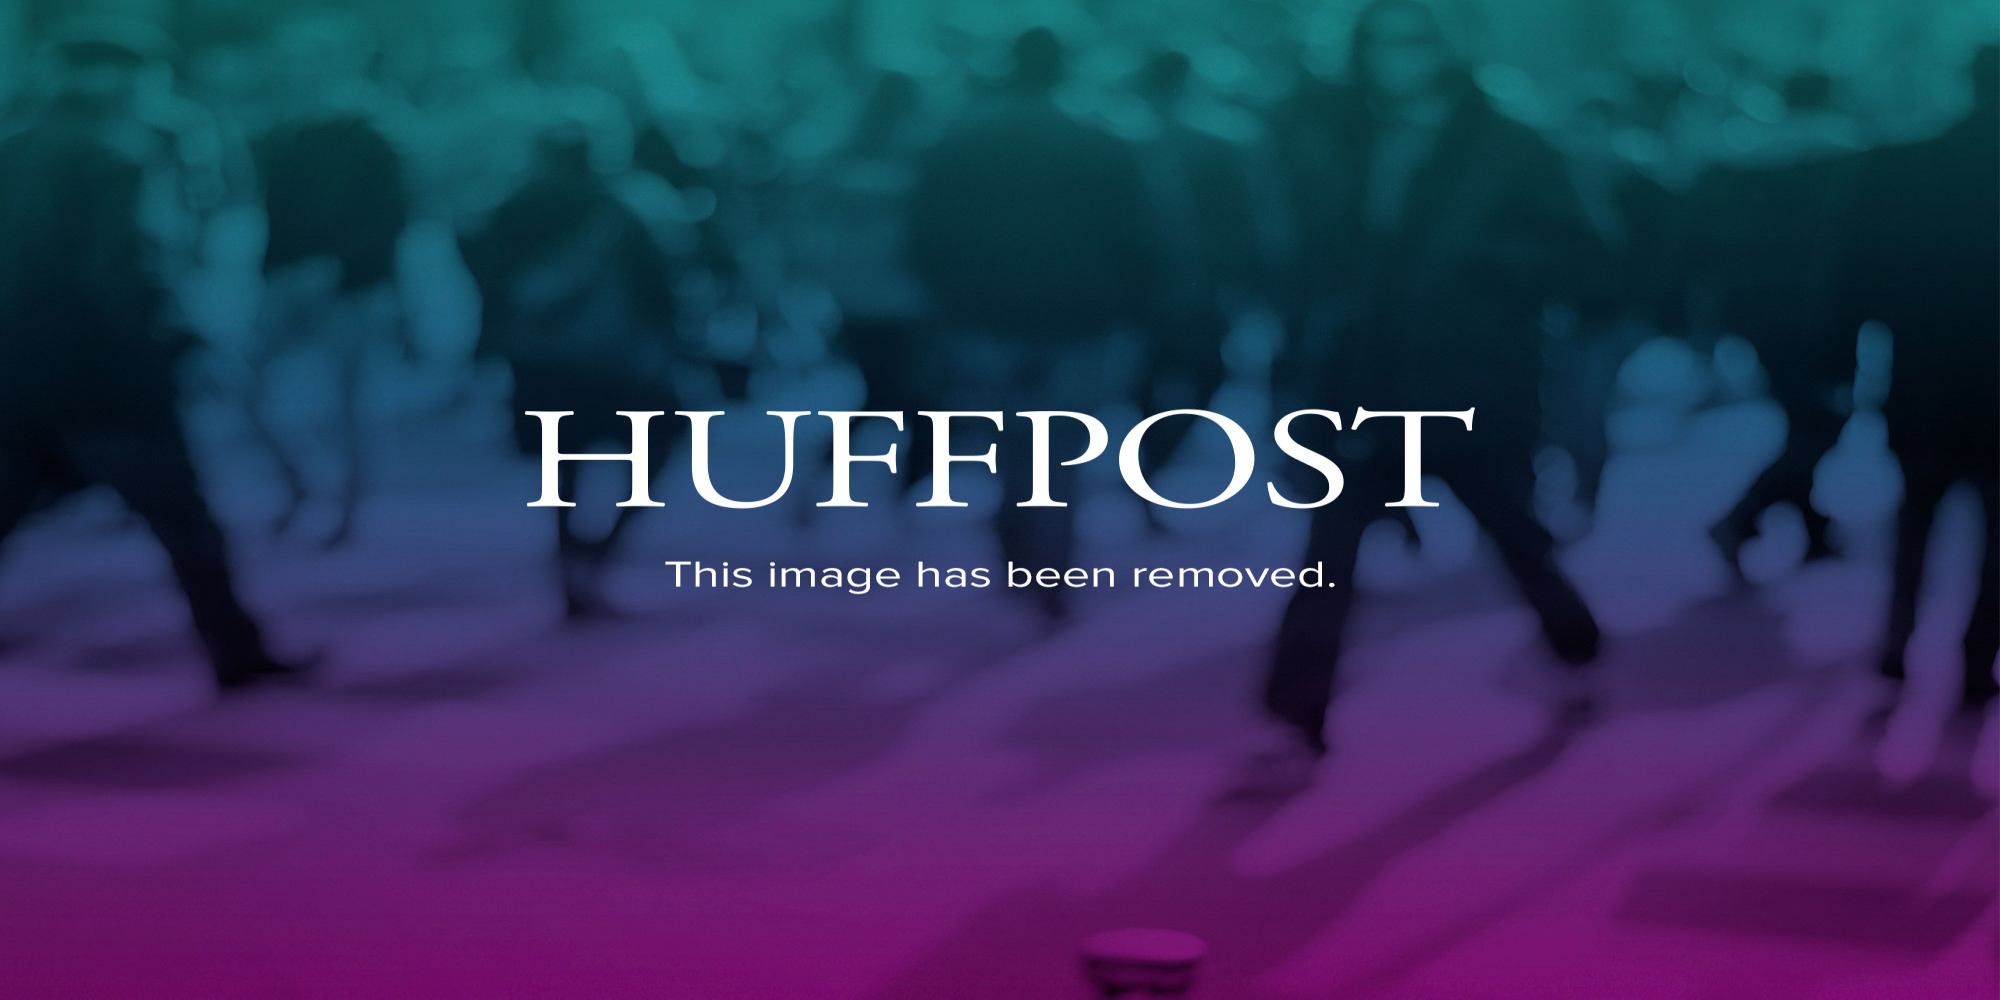 Chelsea handler admits she wants to murder her father for huffpost s